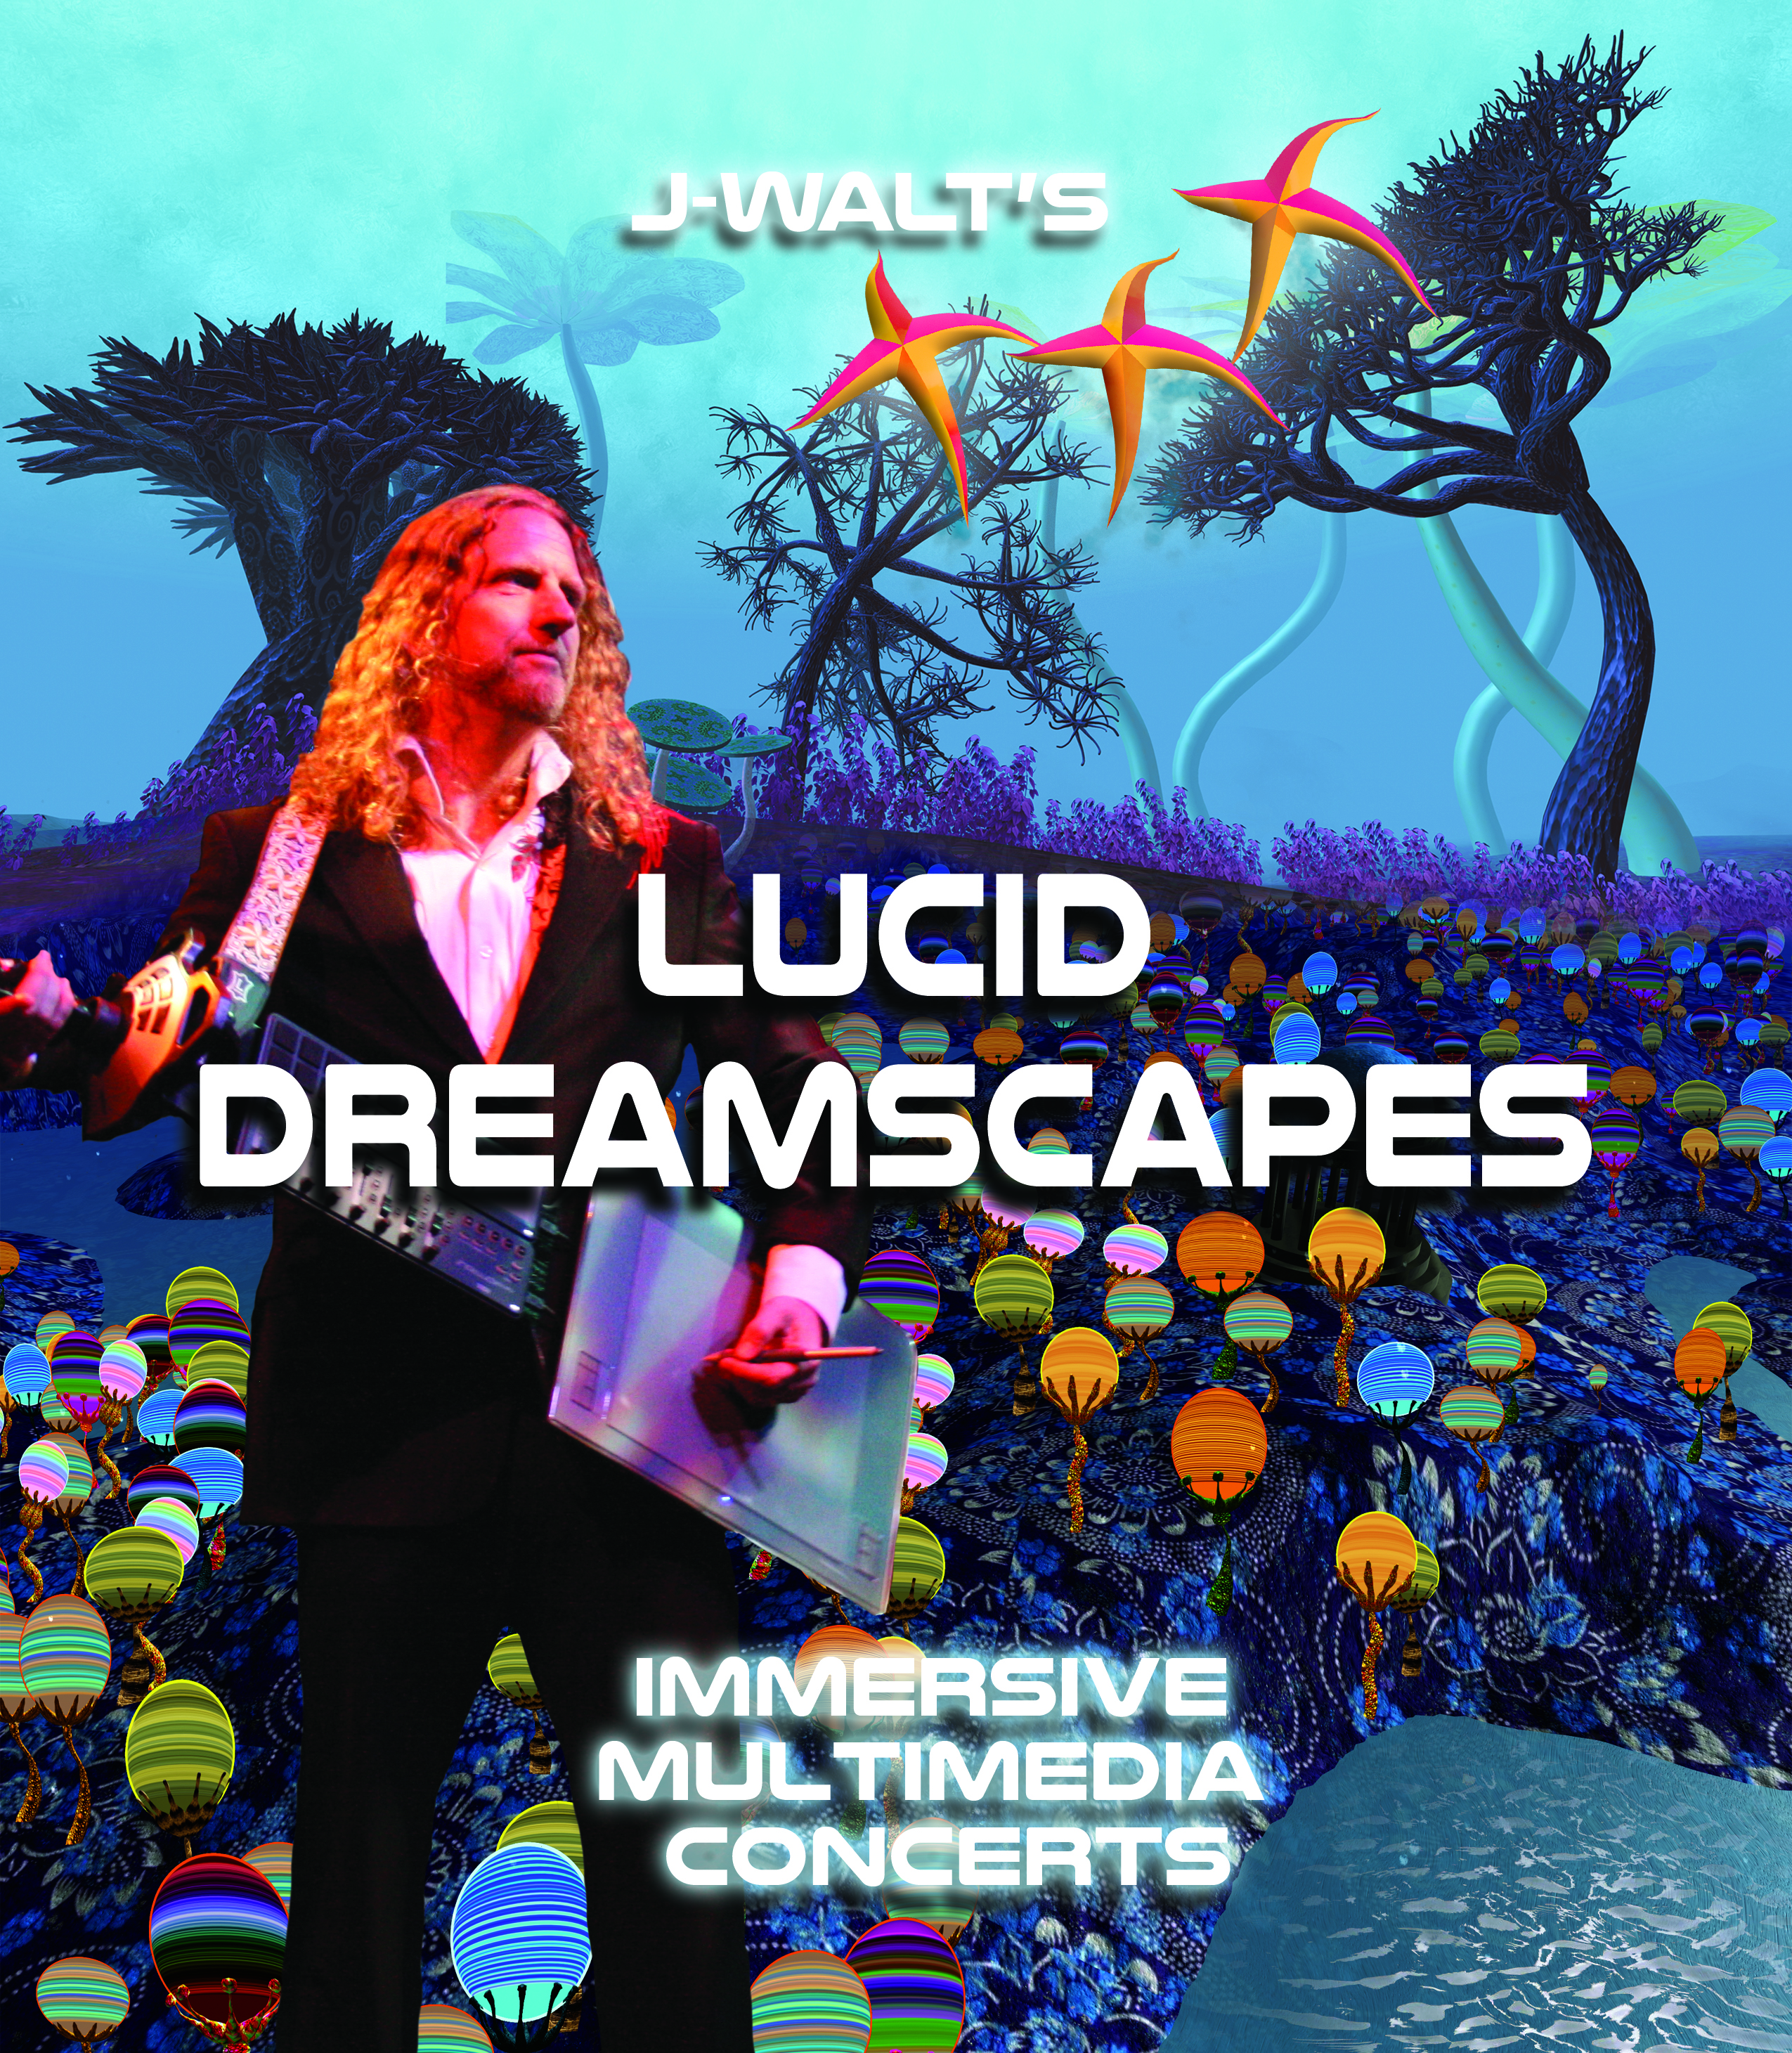 Lucid Dreamscapes!